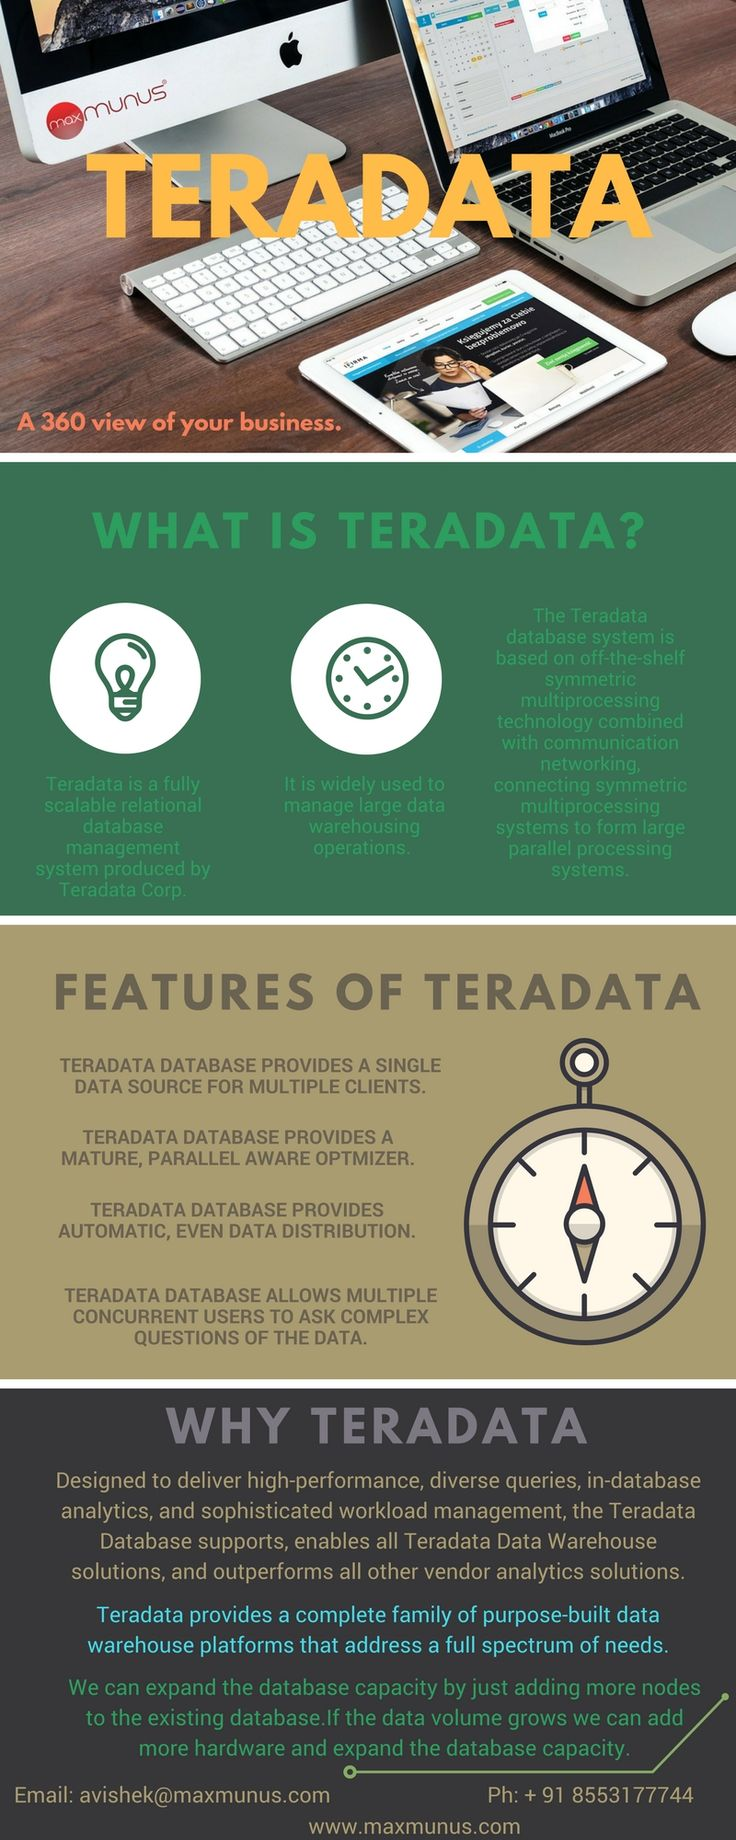 11 best online training images on pinterest positive feedback teradata tutorial for beginners teradata online training which maxmunus is providing contains a soft copy baditri Image collections